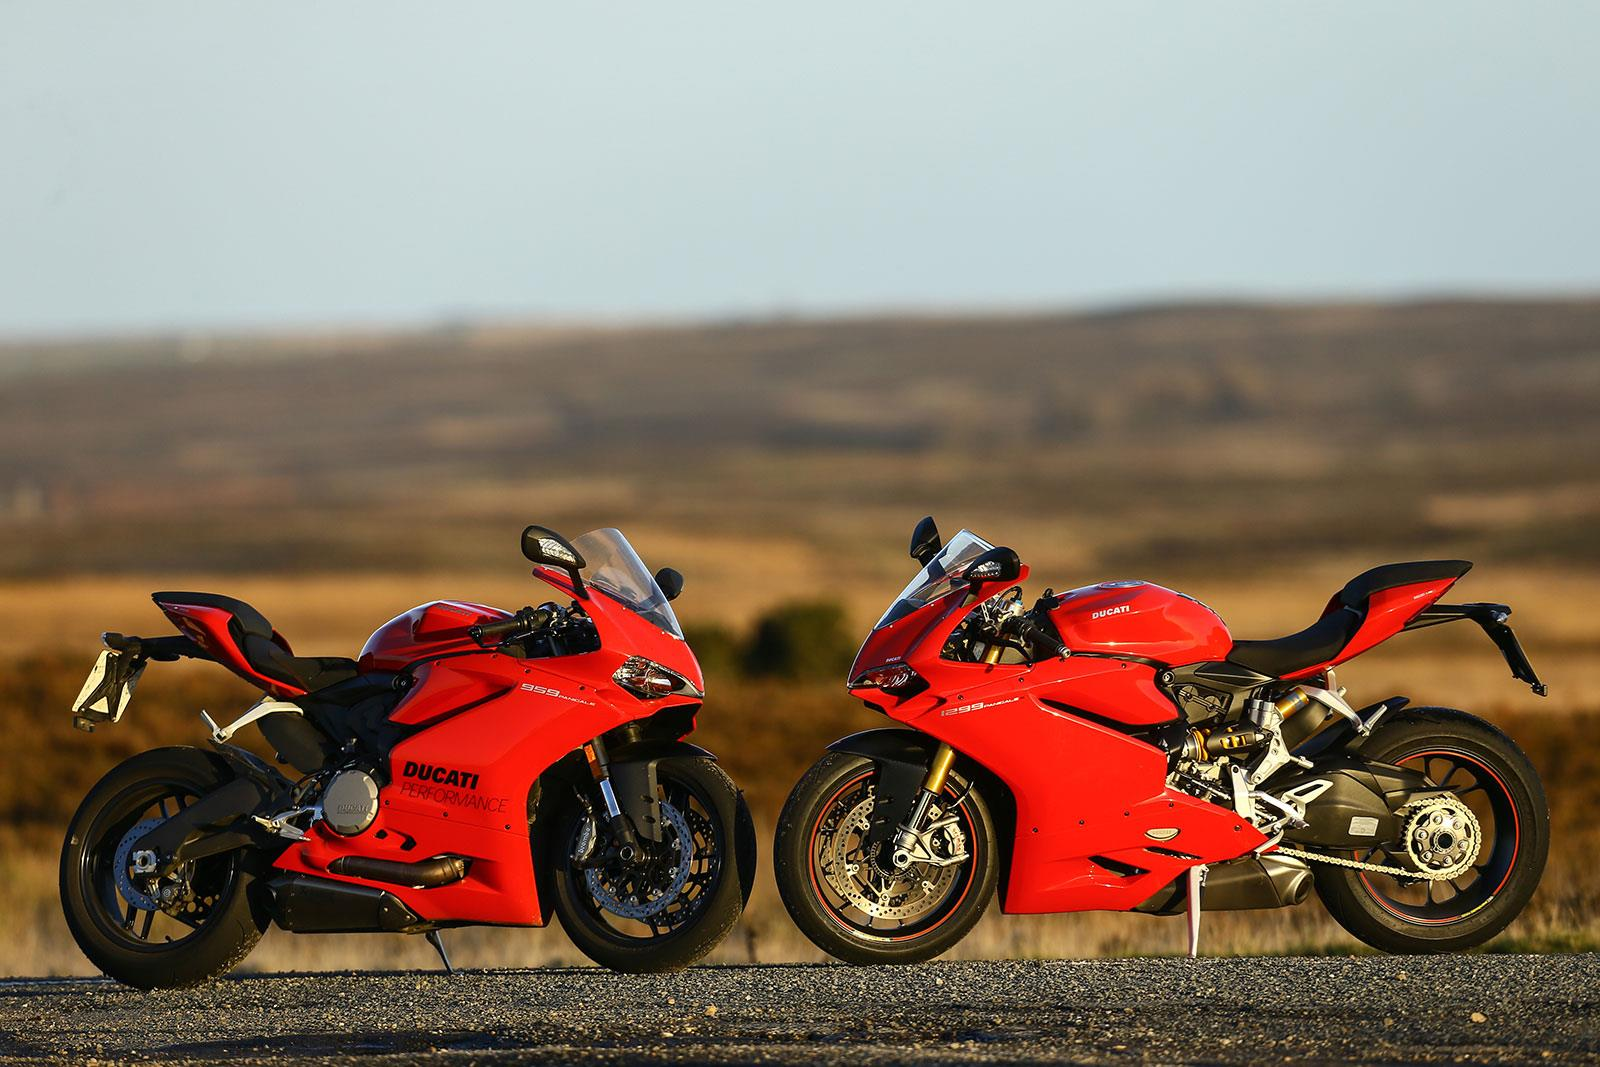 Gallery: Ducati 1299 Panigale v 959 | MCN